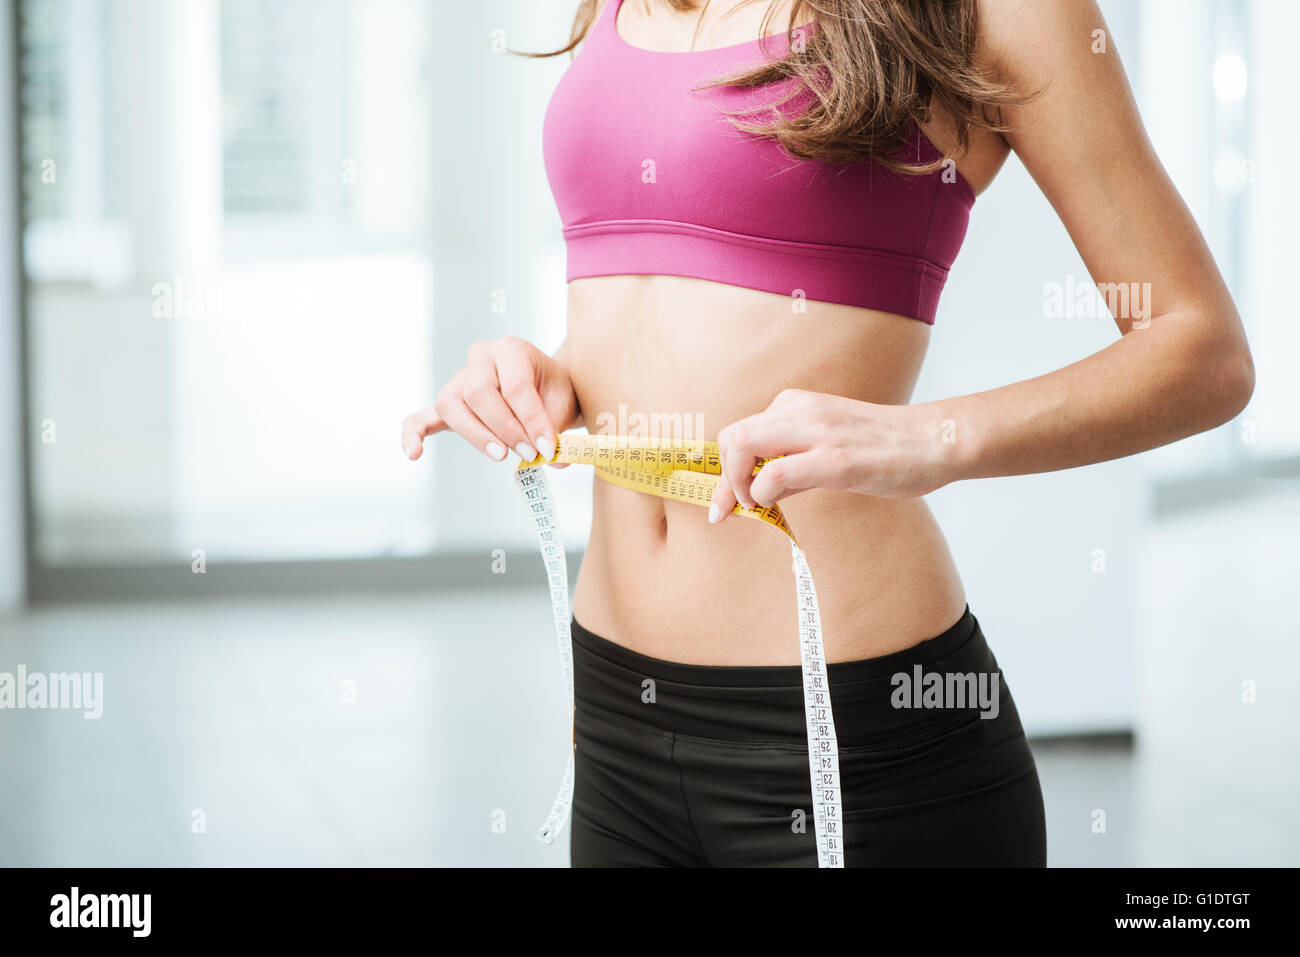 Slim young woman measuring her thin waist with a tape measure, close up - Stock Image